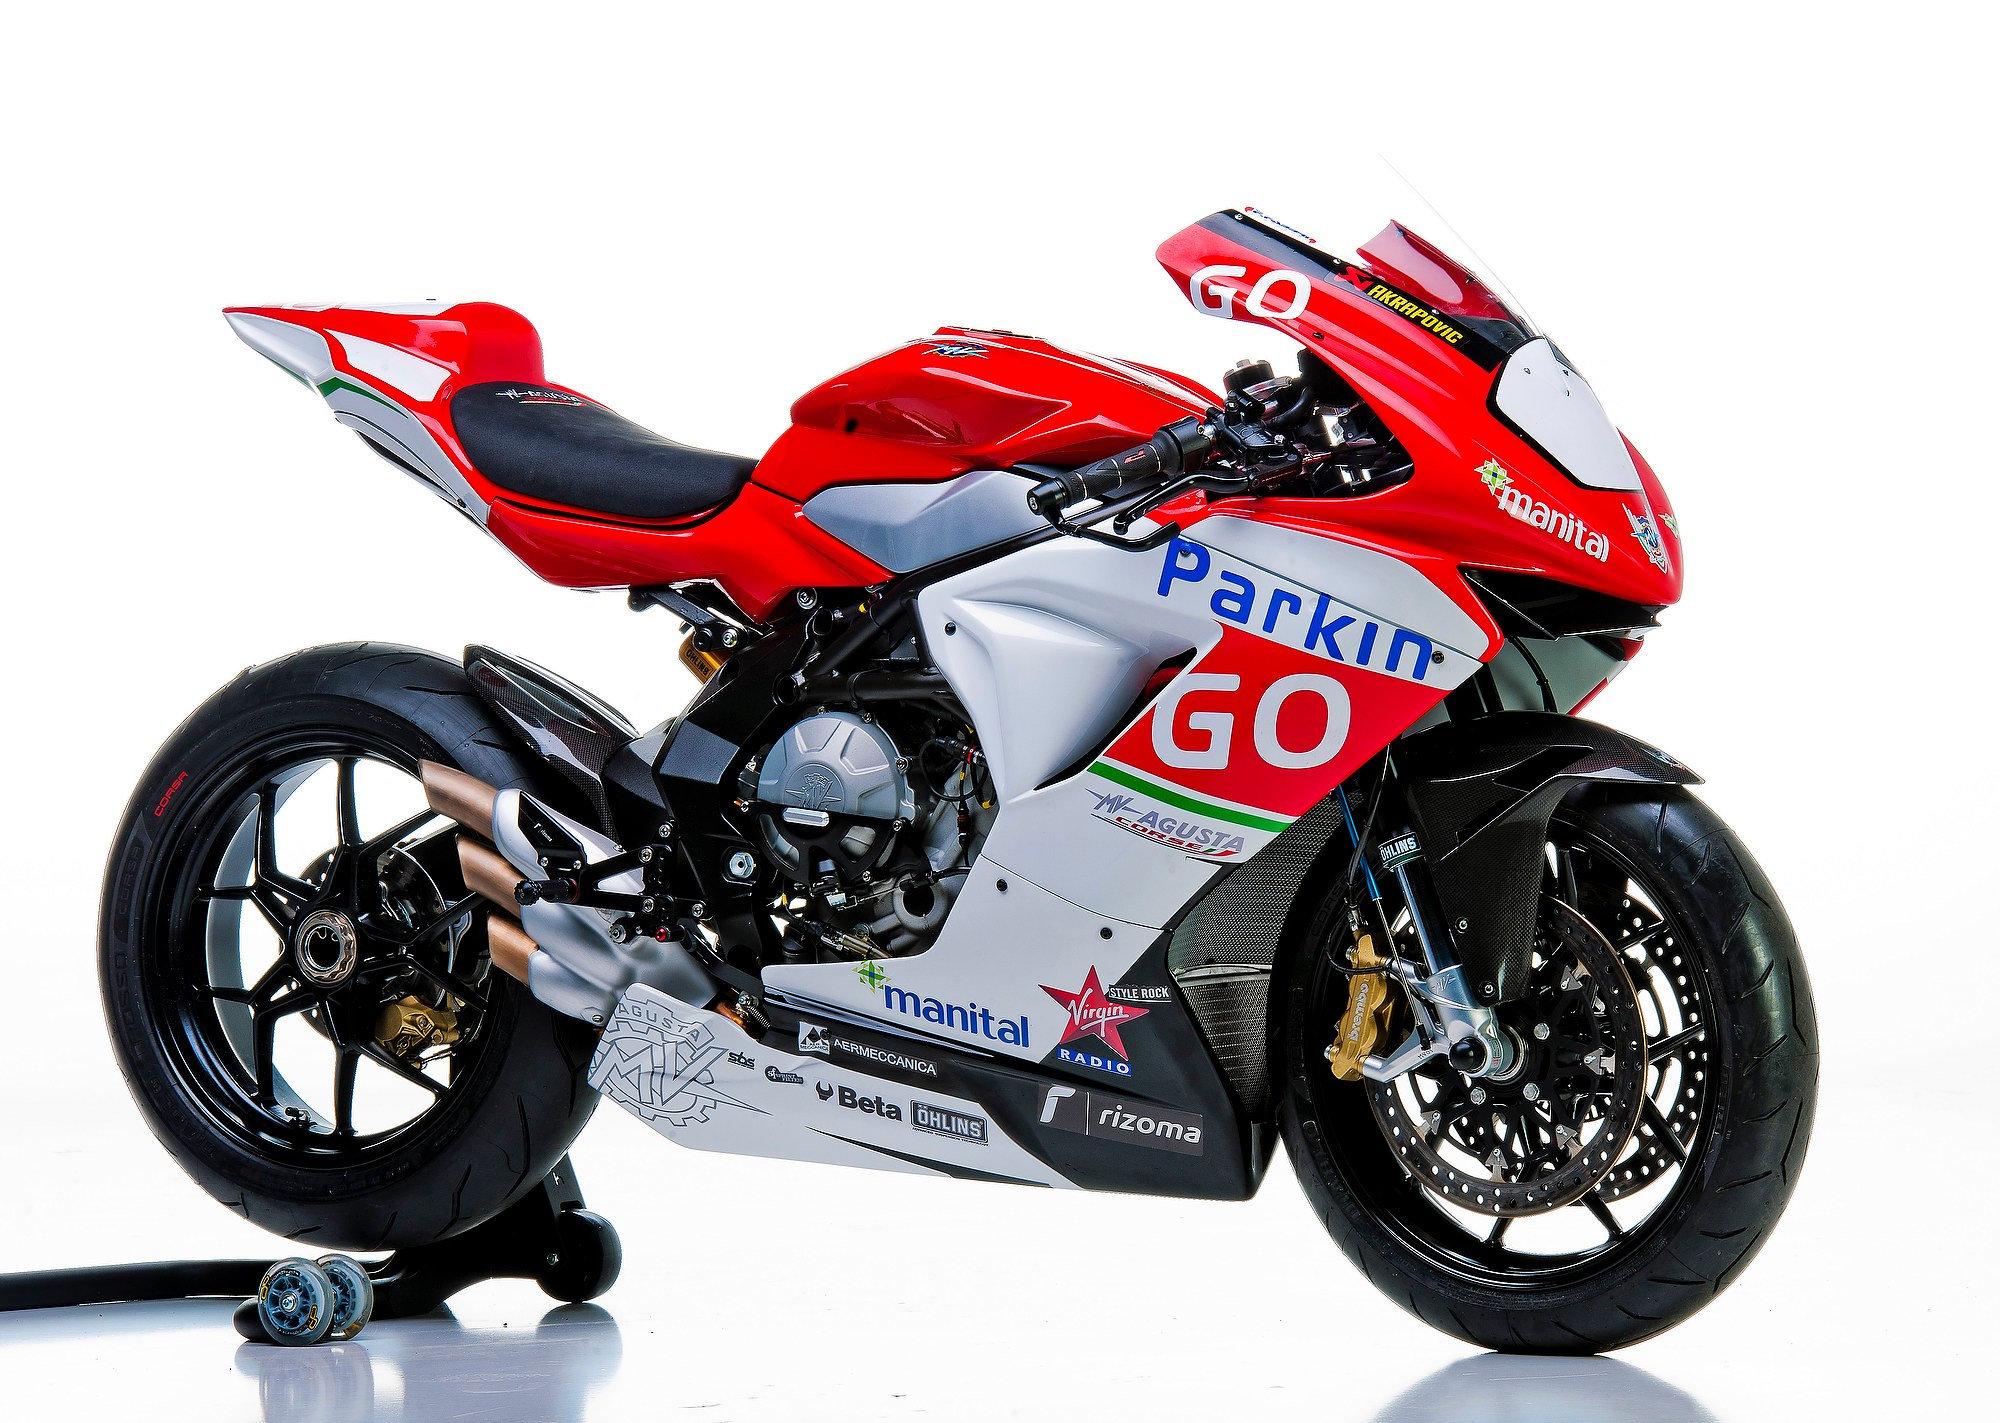 This Is The MV Agusta Corse ParkinGO Supersport Race Bike